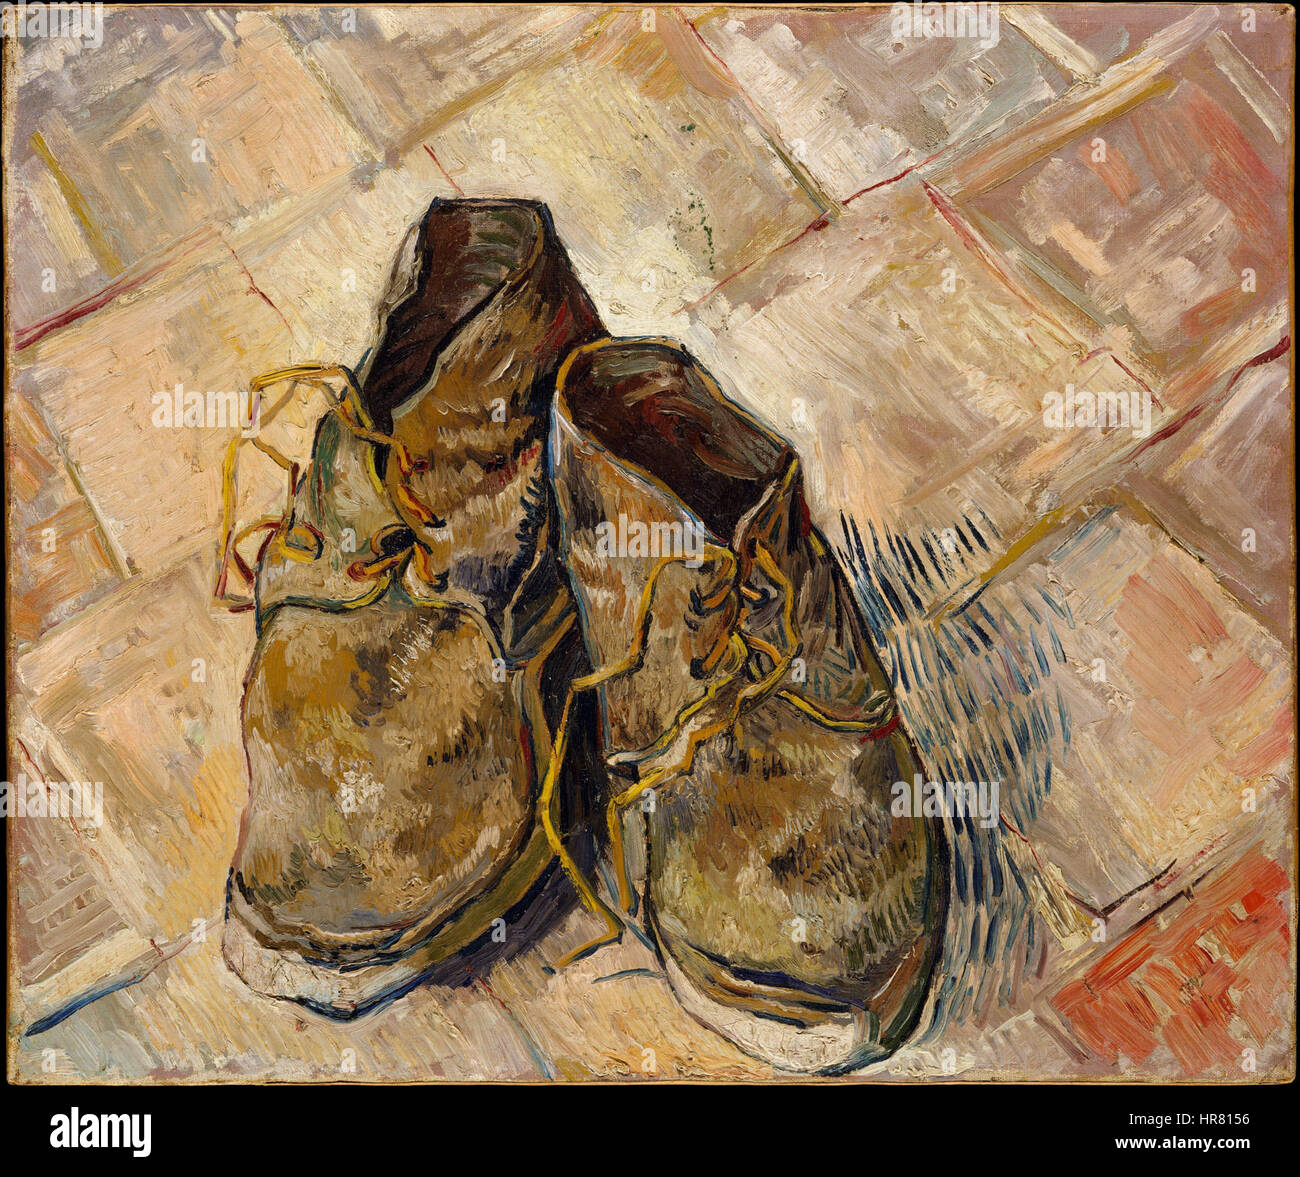 Shoes Vincent Van Gogh Imágenes De Stock & Shoes Vincent Van